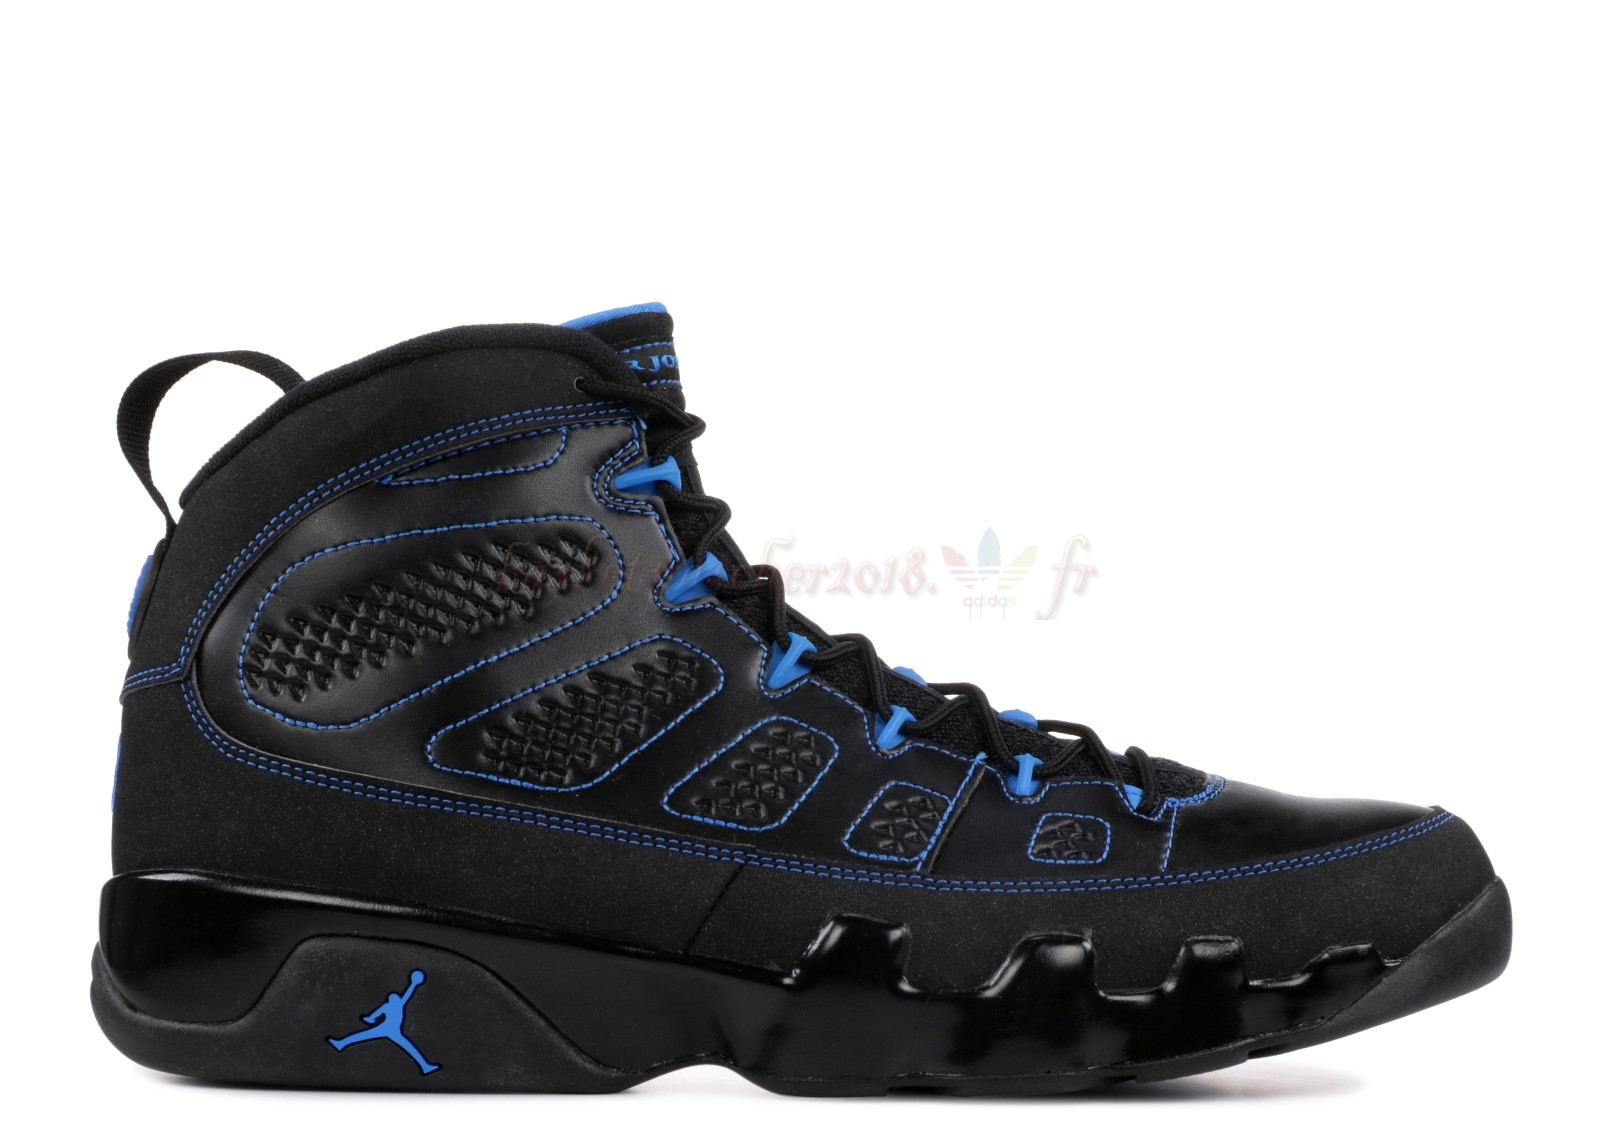 "Vente Chaude Chaussures De Basketball Homme Air Jordan 9 Retro ""Noir Bottom Photo Blue"" Noir (302370-007) Pas Cher"